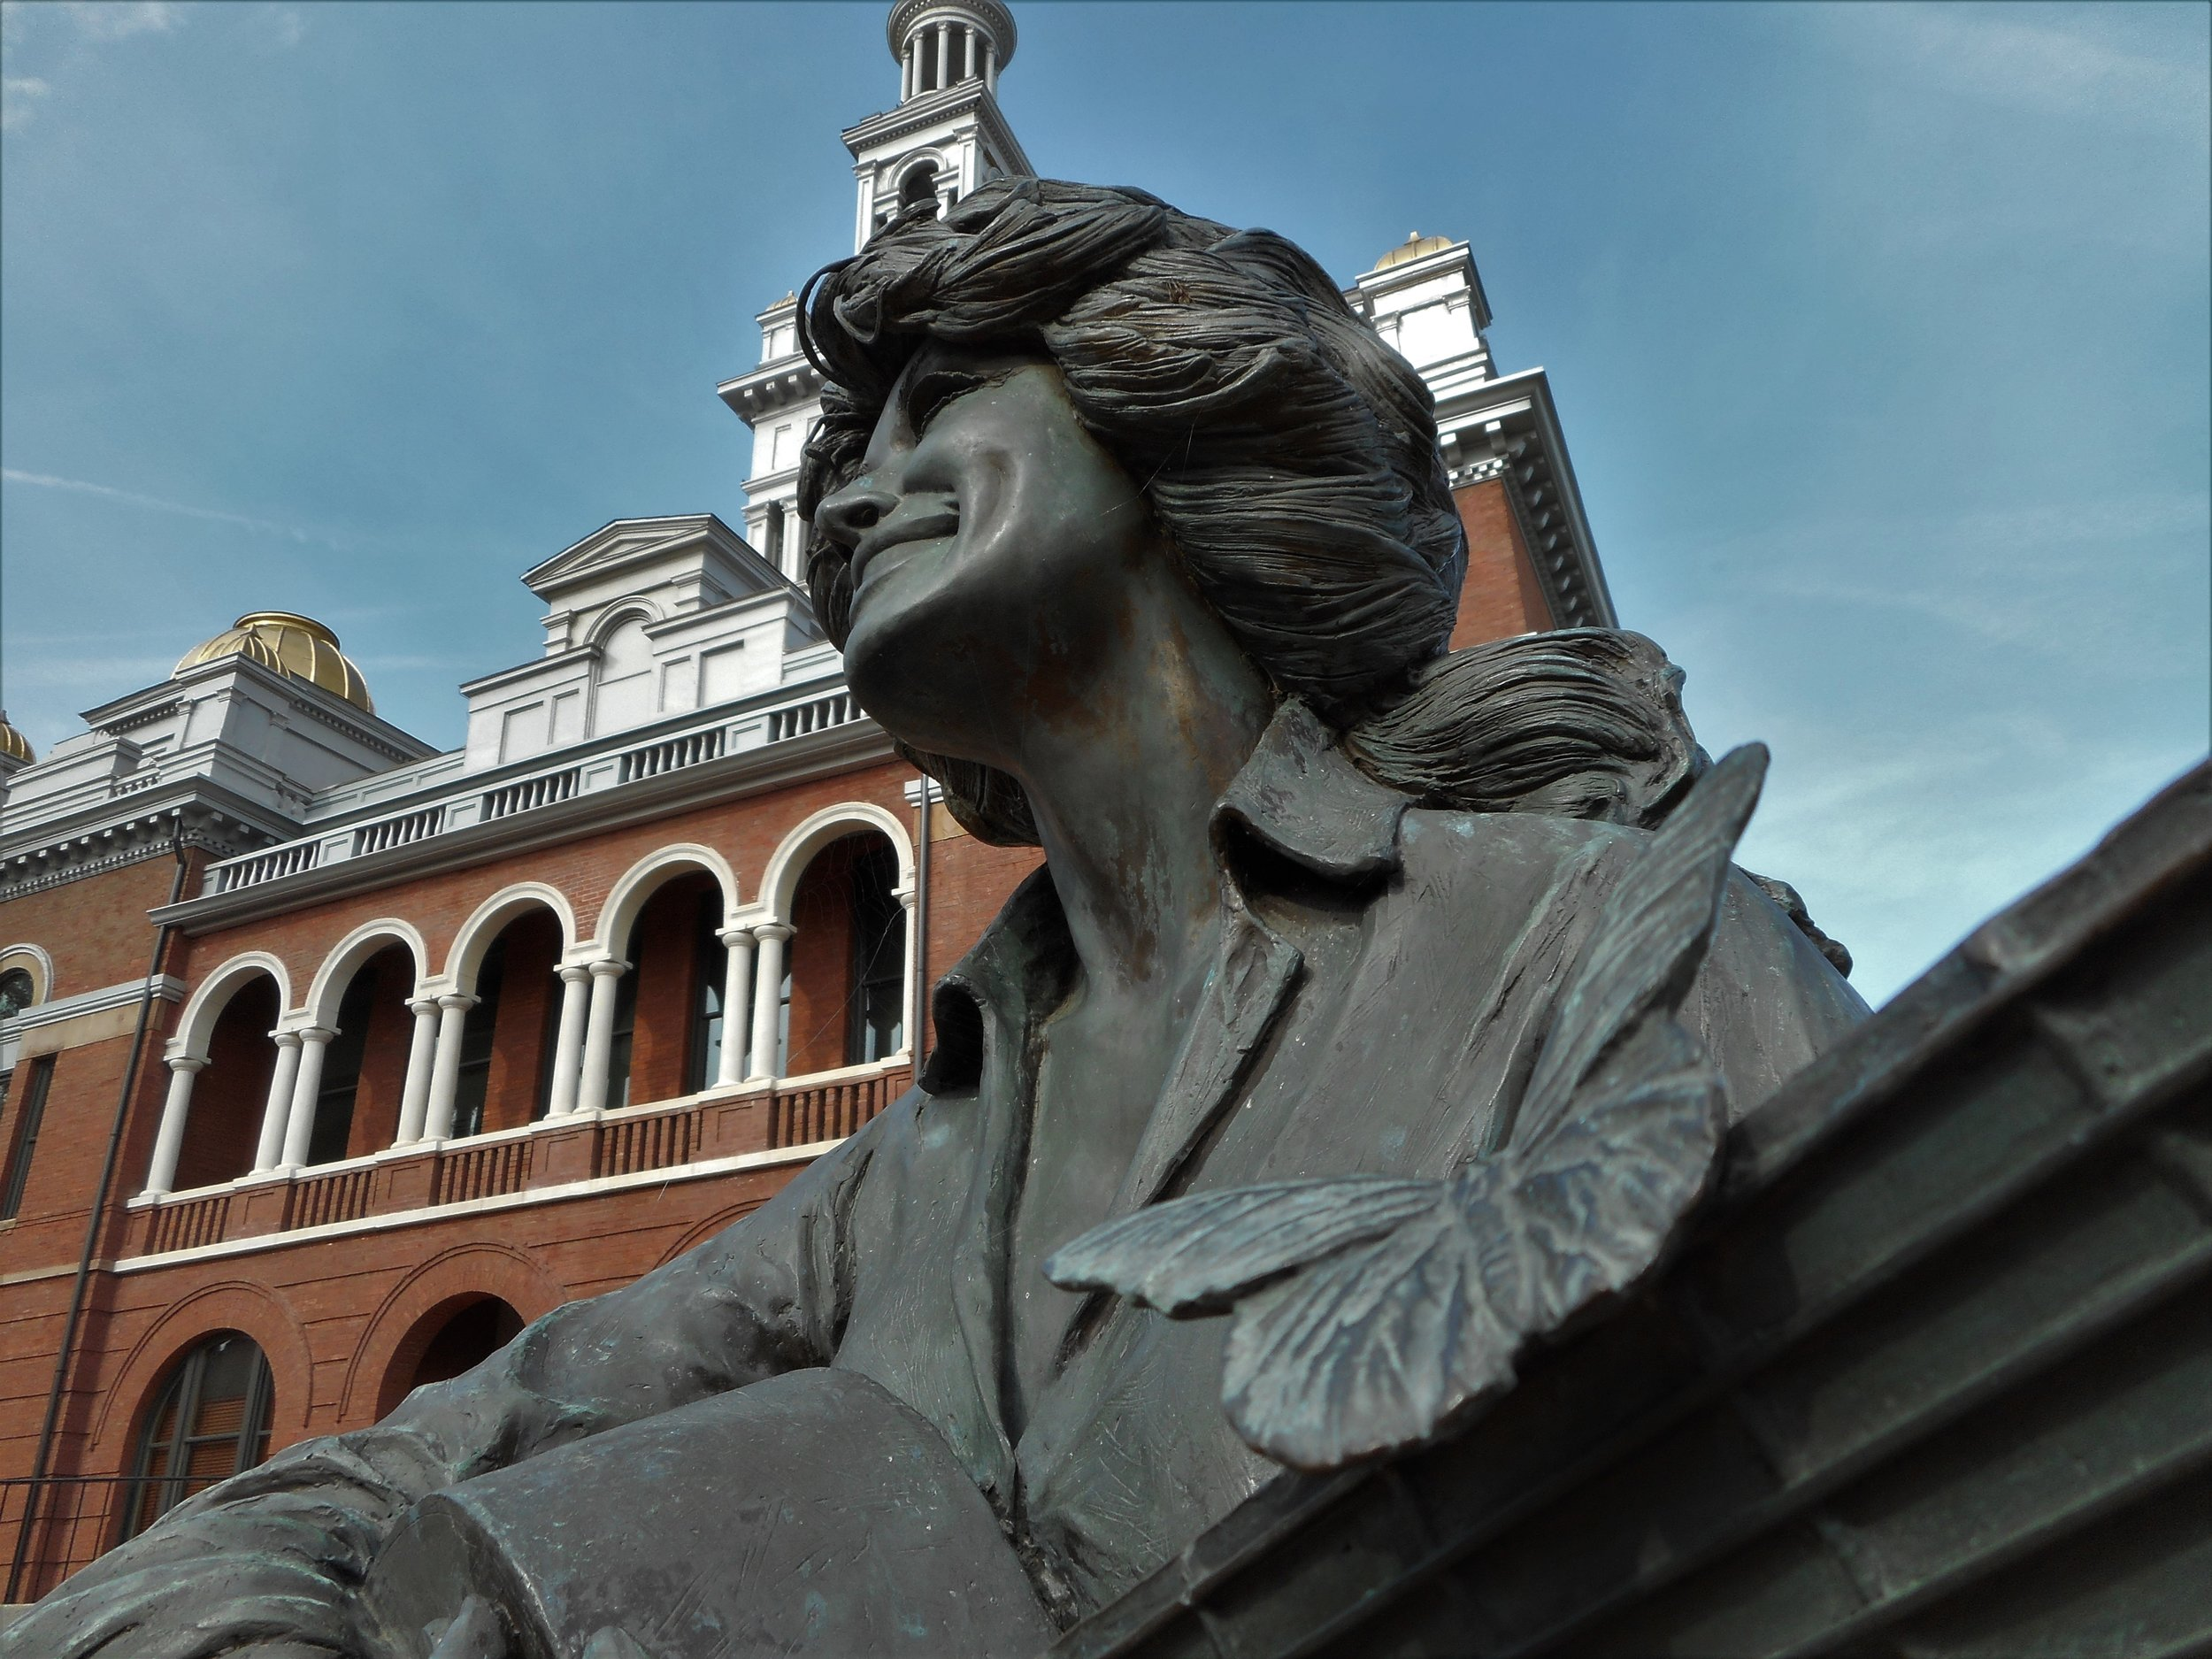 U.S. 441 takes you through Dolly Parton's hometown. Just a couple of blocks off the highway at the Sevier County Courthouse, you'll find this statue.